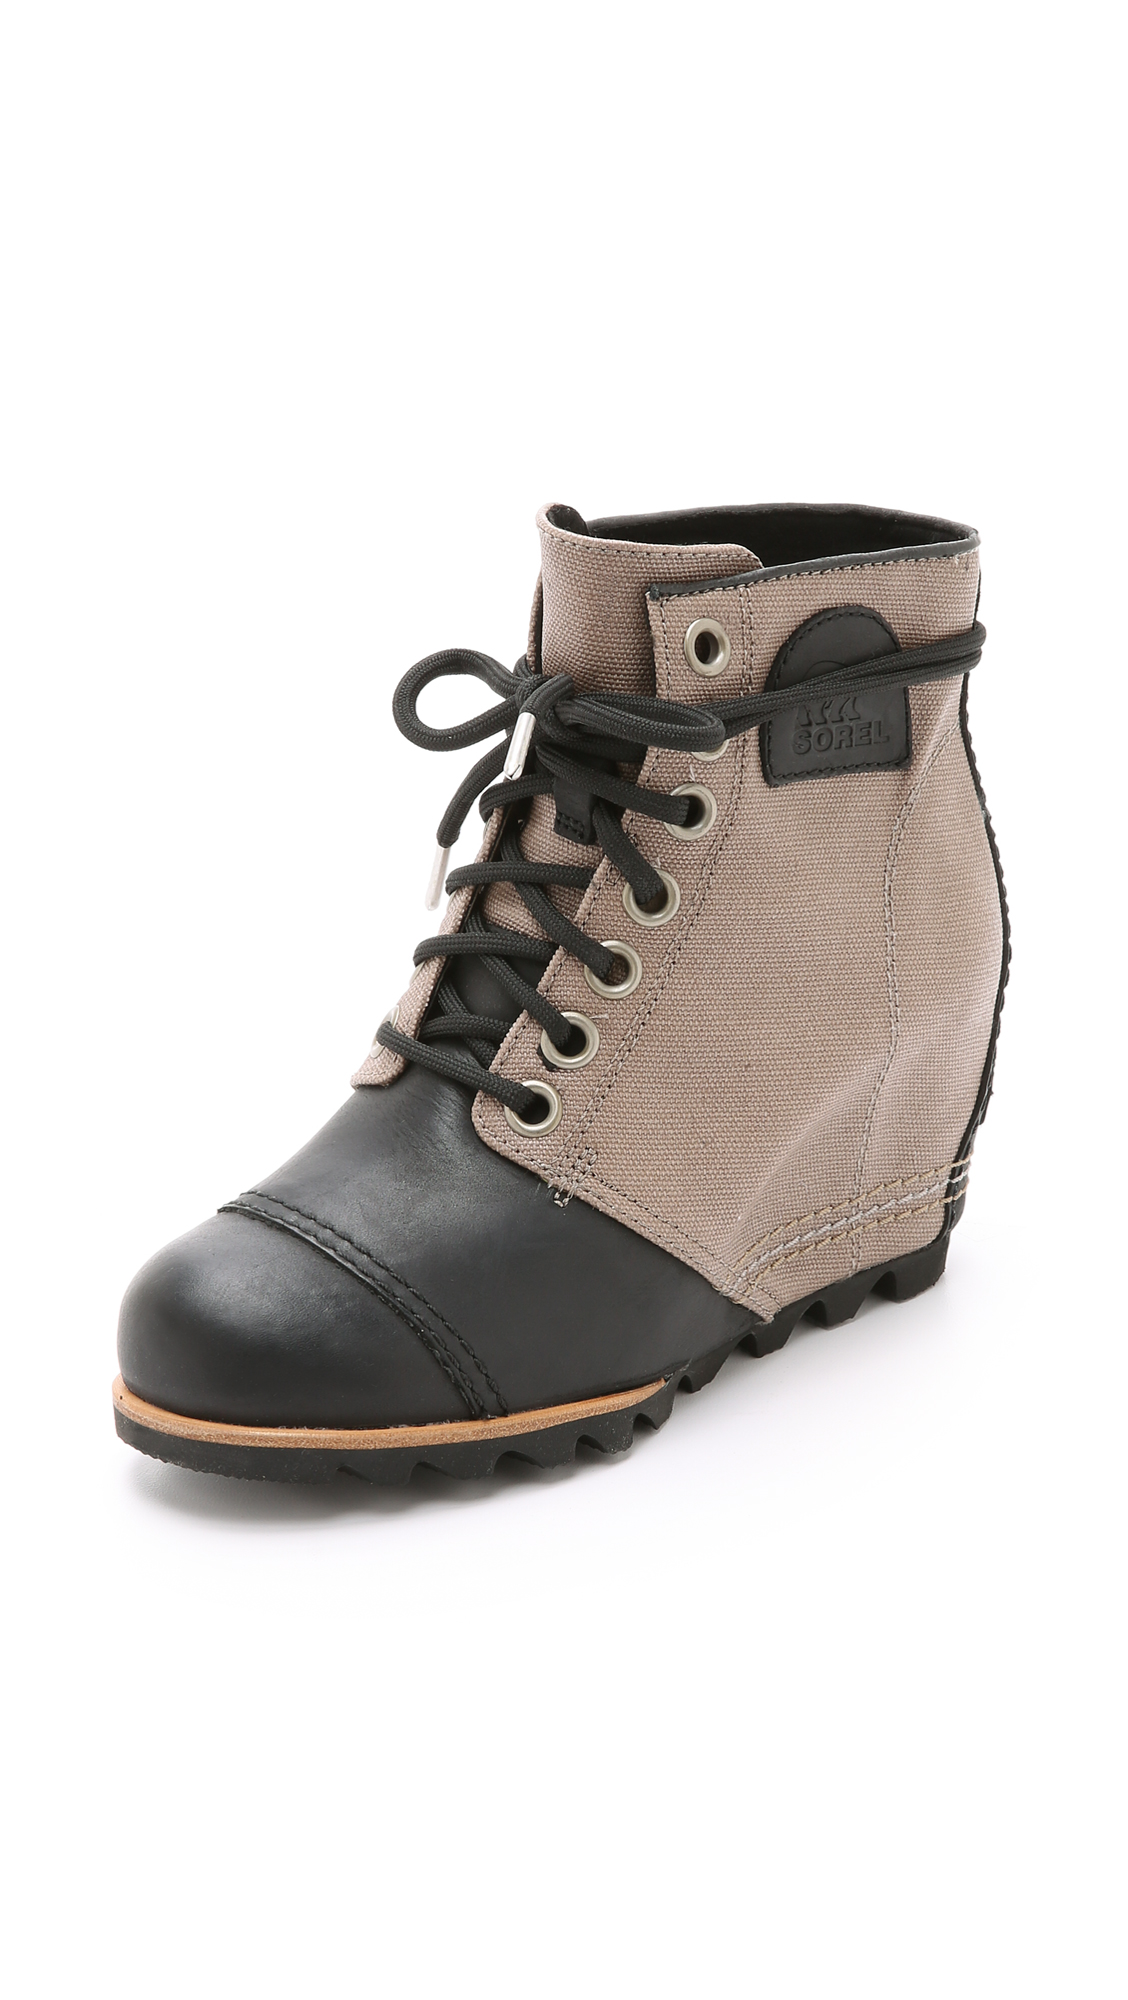 33ffe61e46b1 Sorel 1964 Premium Wedge Booties on PopScreen